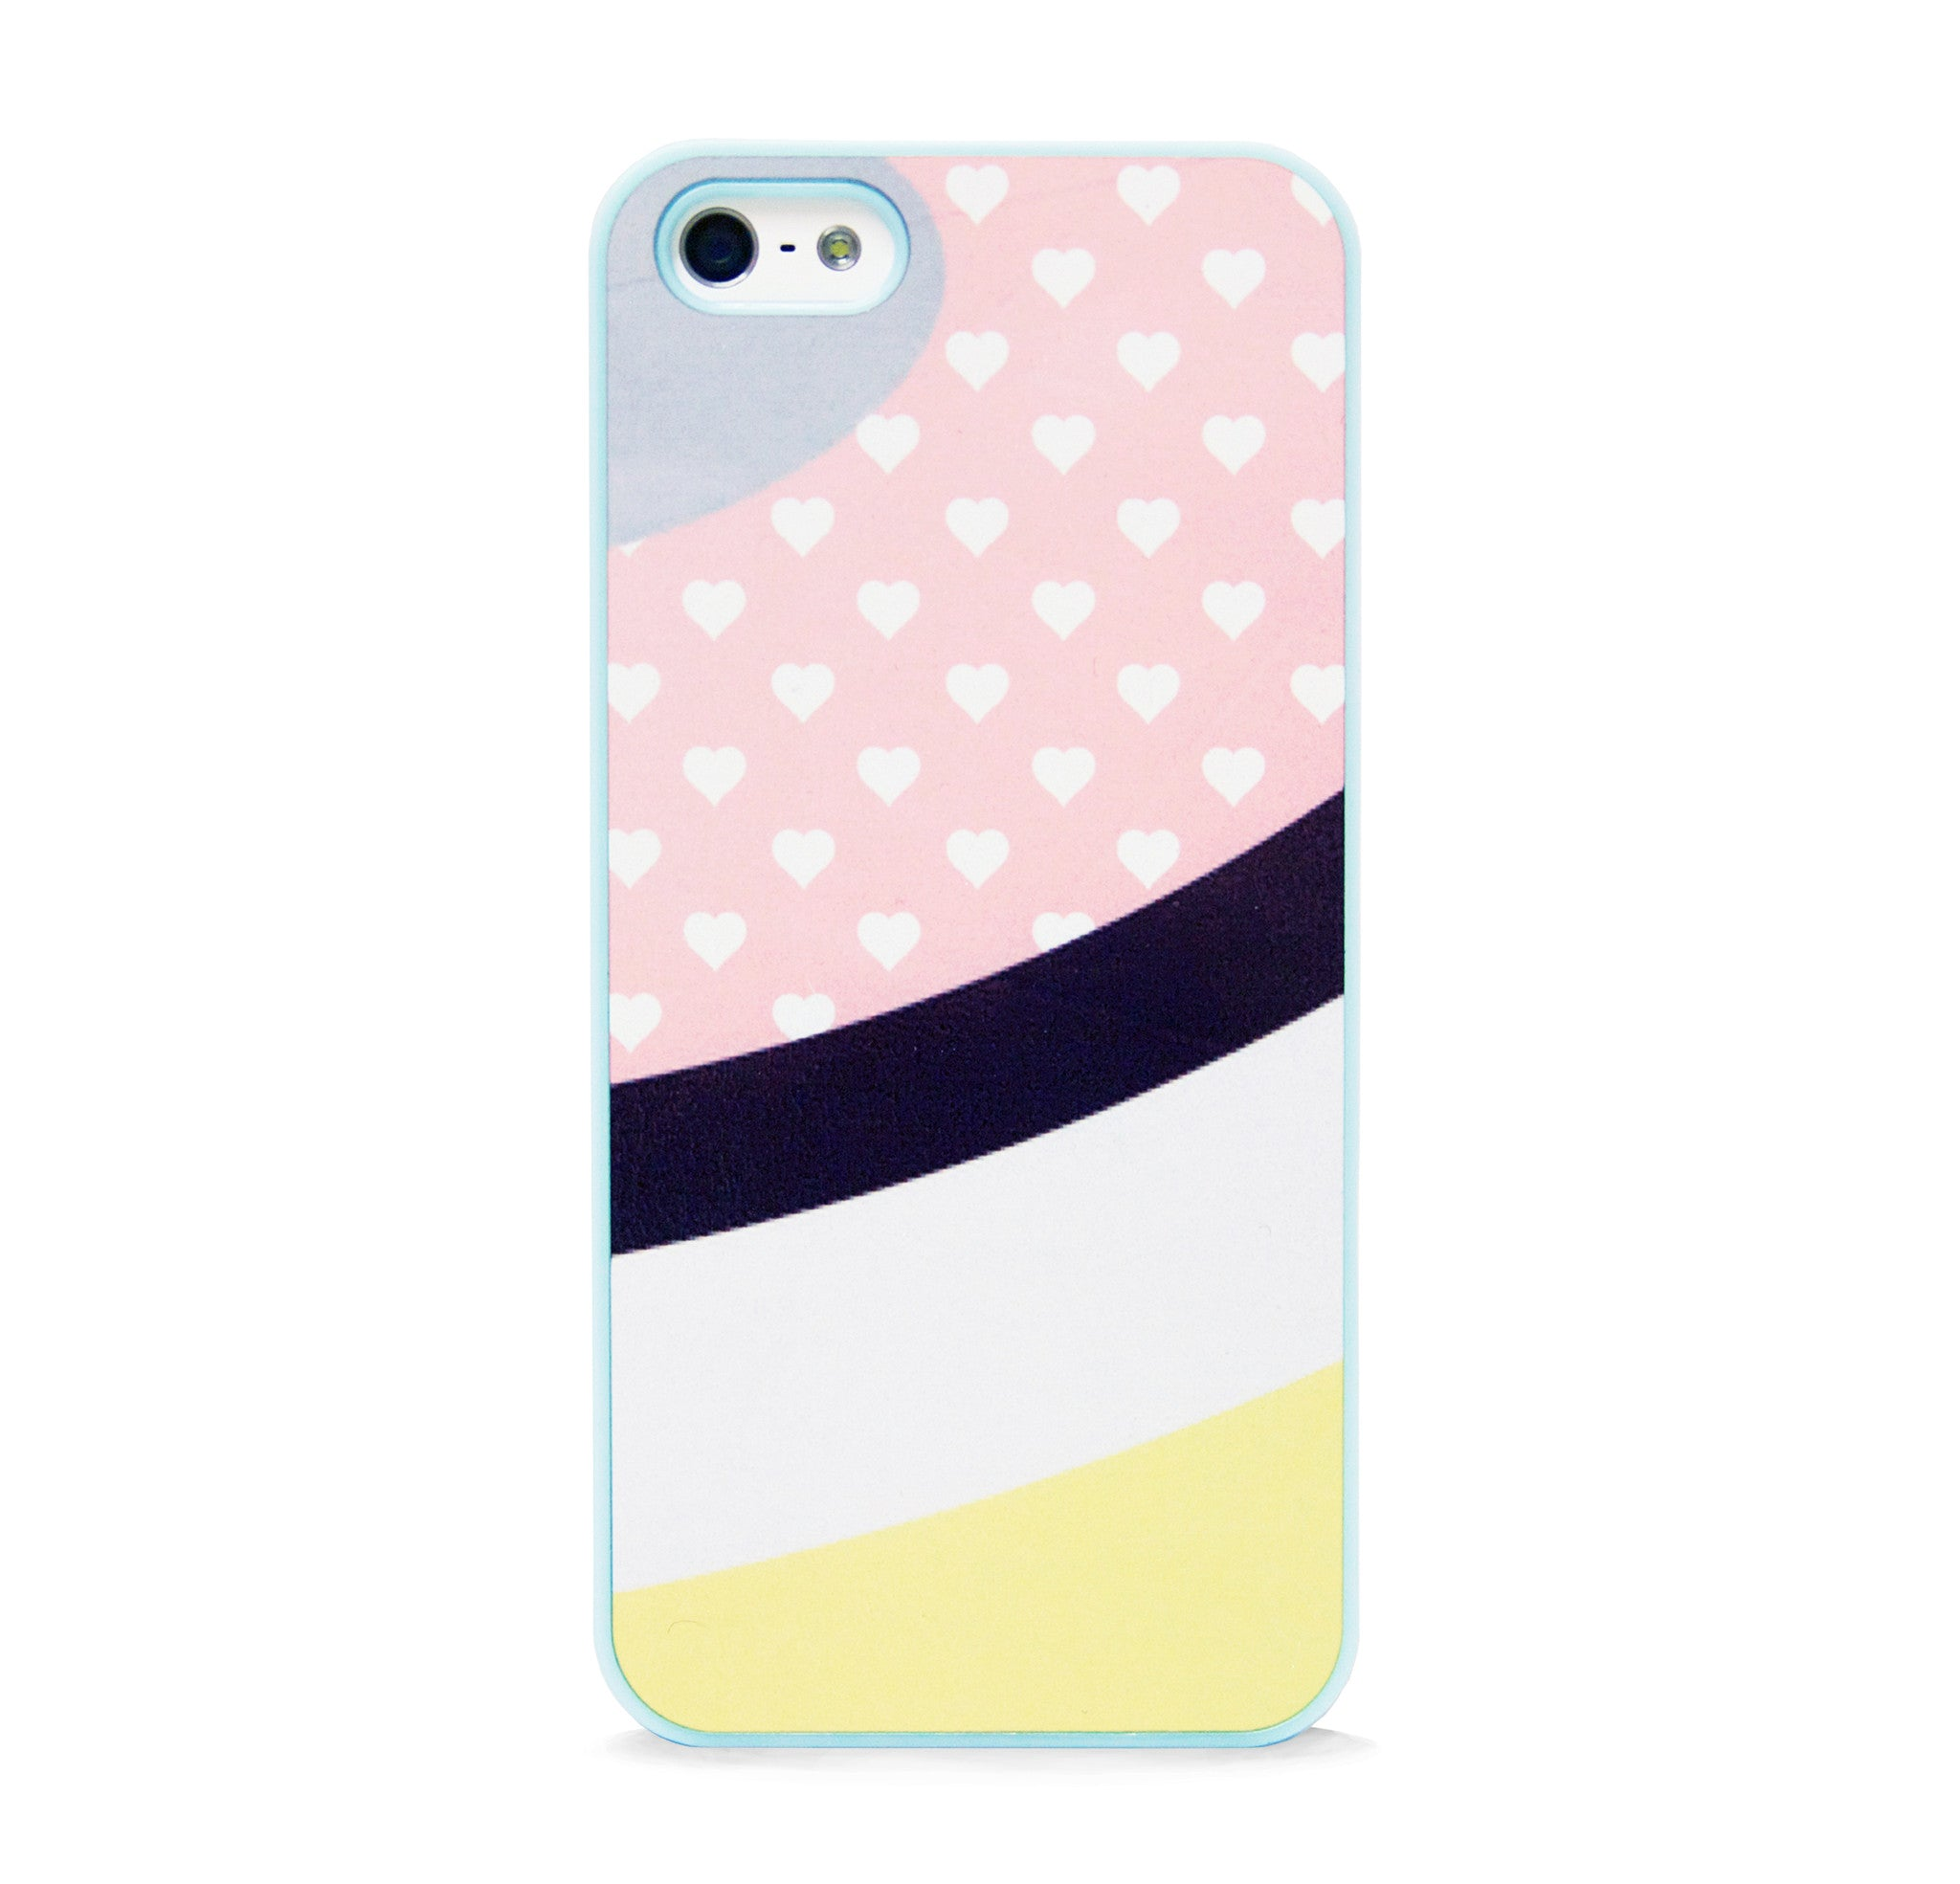 POLKA HEART PINK BLUE FOR IPHONE 5/5S